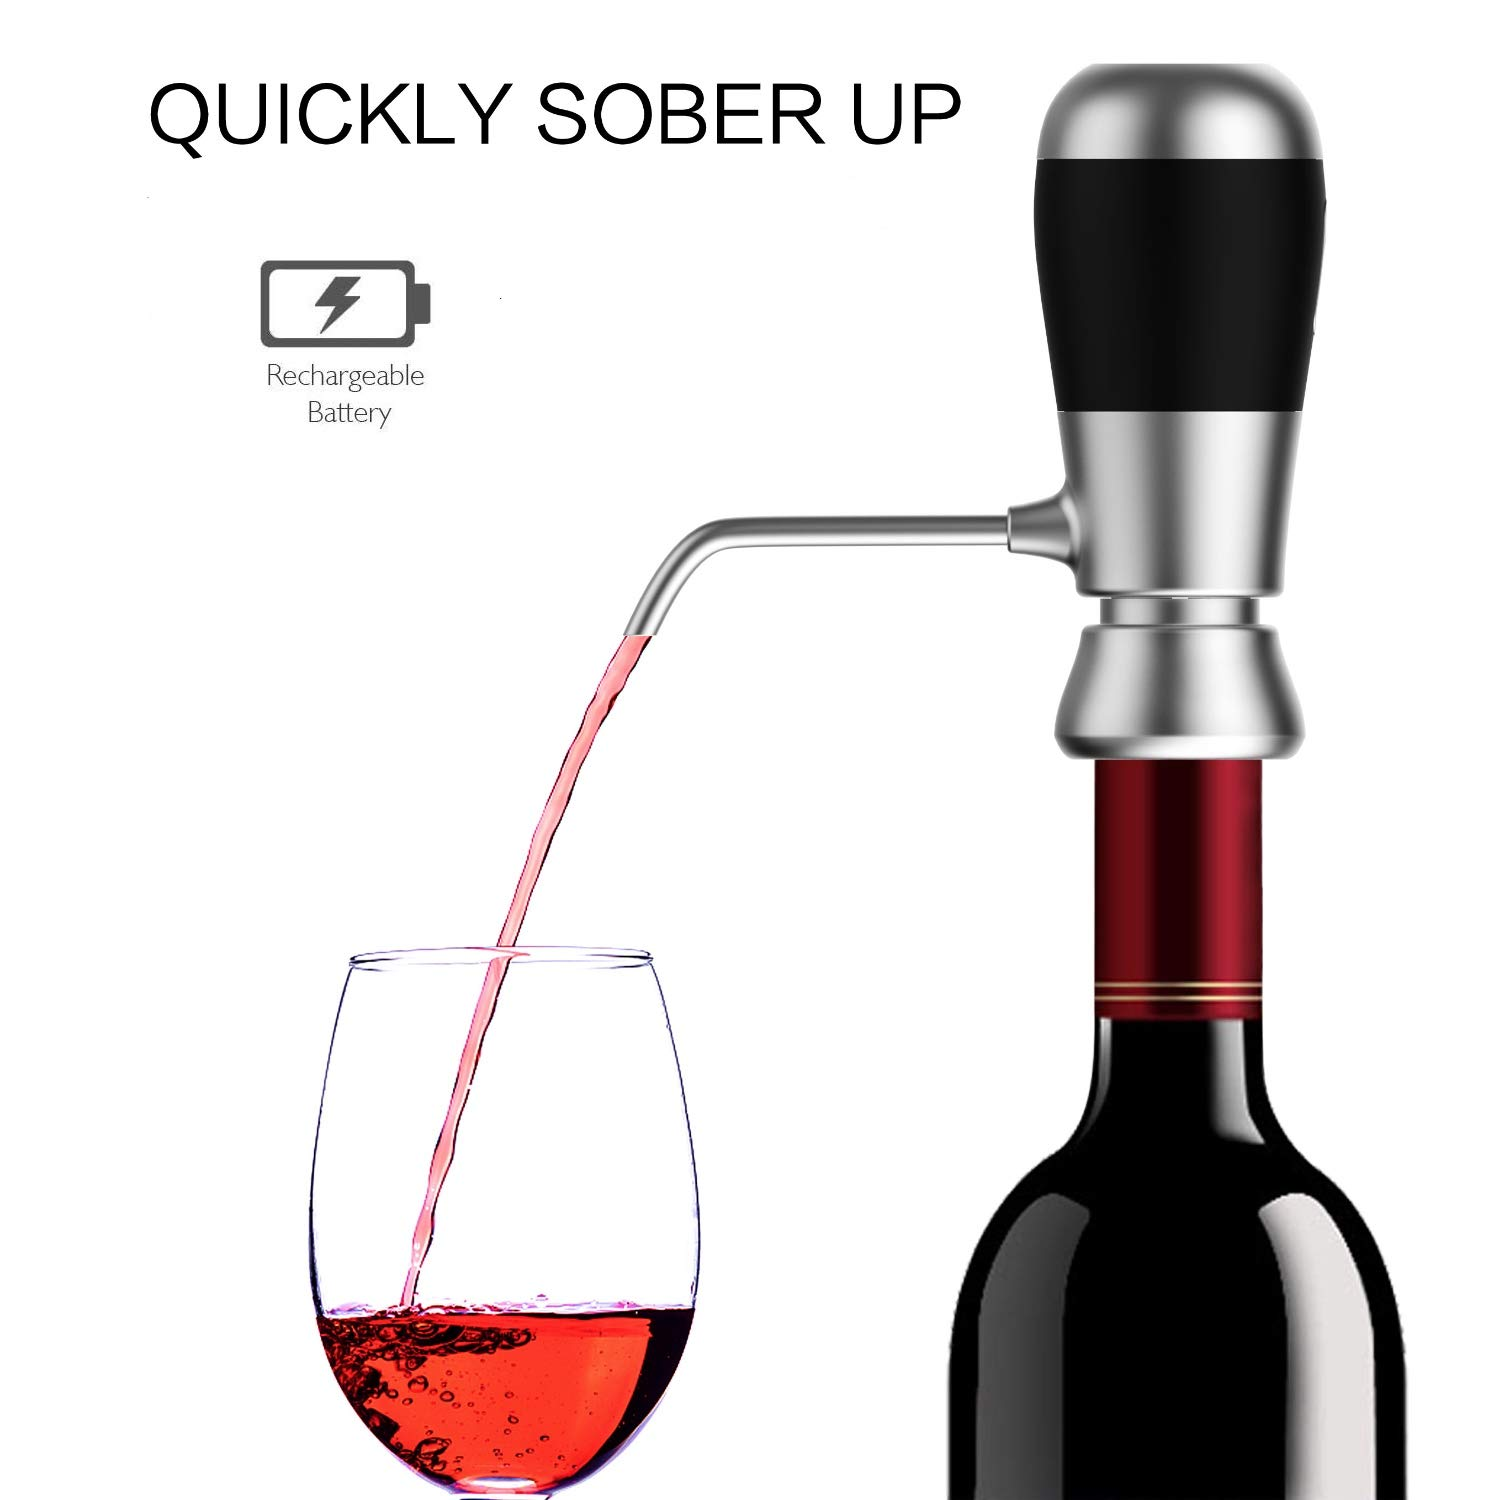 LOVHO Instant 1-Button Electric Wine Aerator - Rechargeable Battery - Black